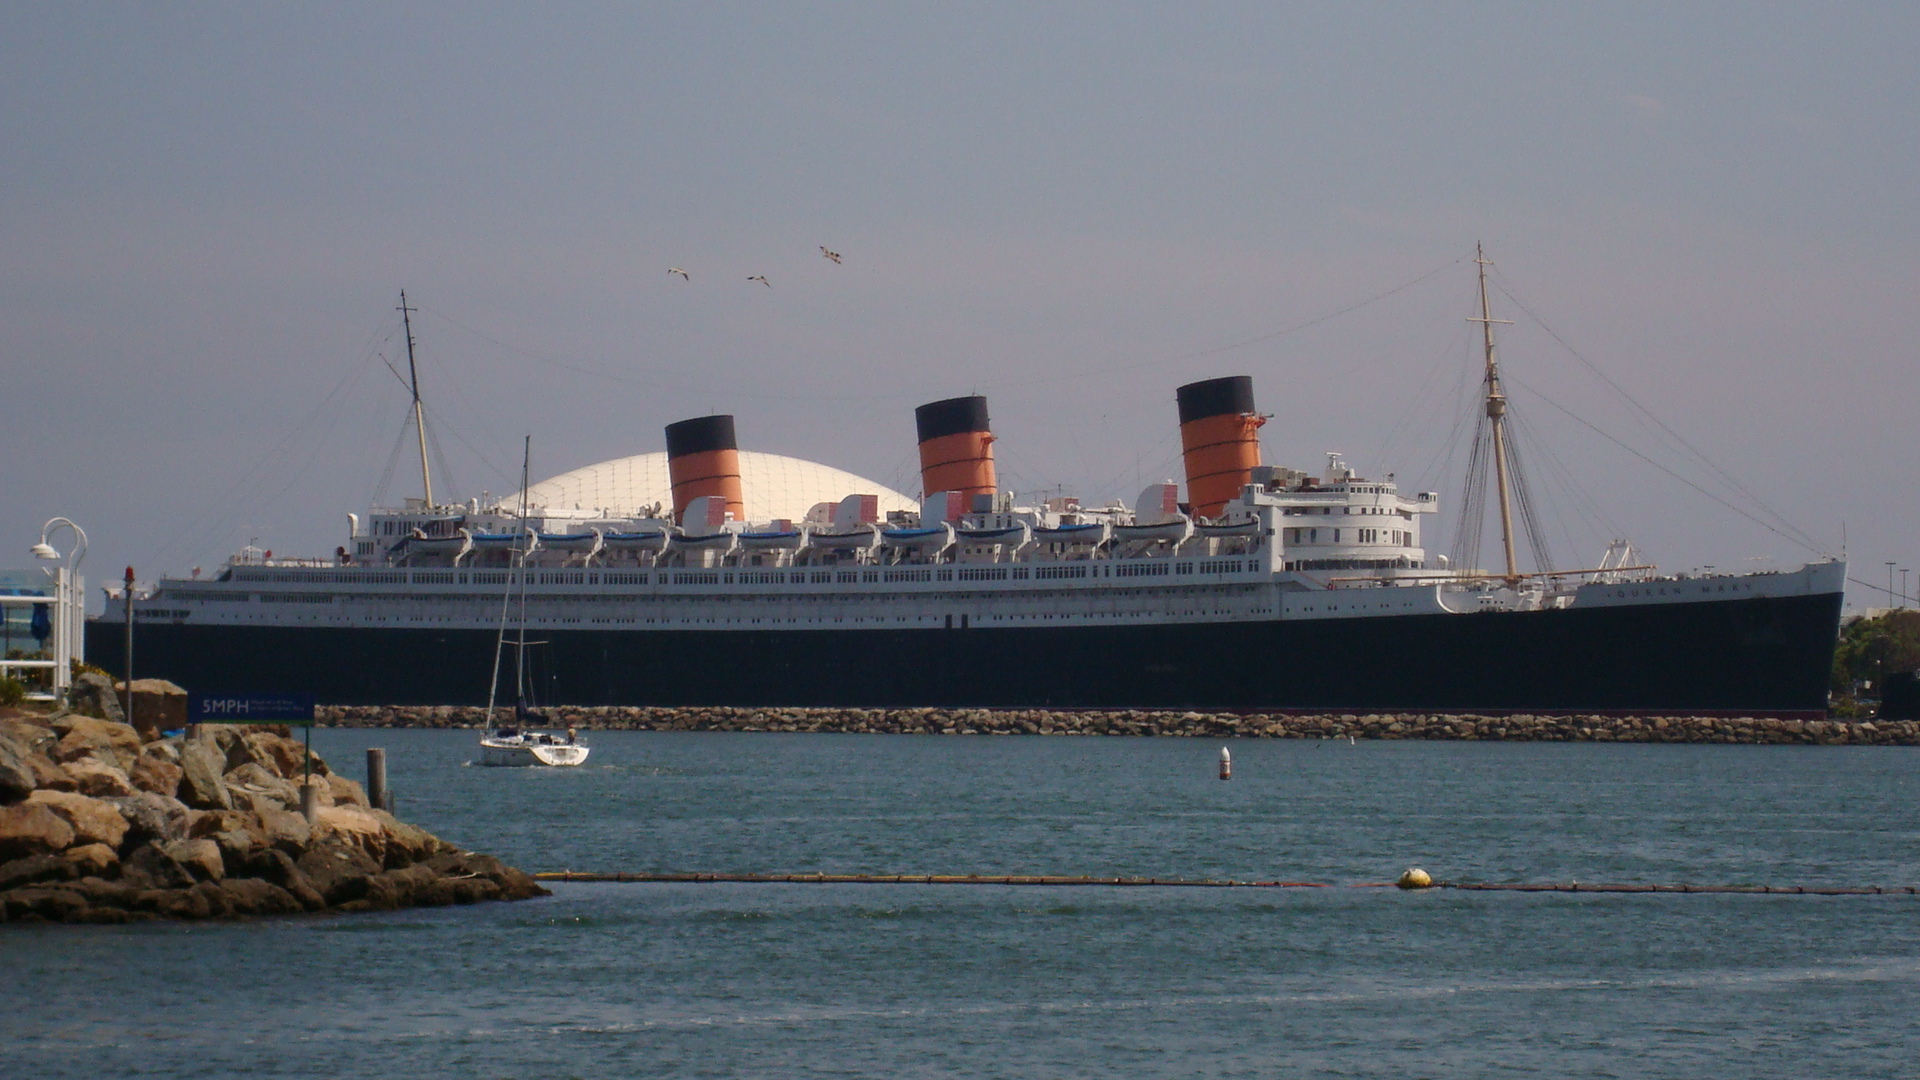 Rms queen mary pictures 25 Most Funniest Memes About Being Sick Images And Pictures